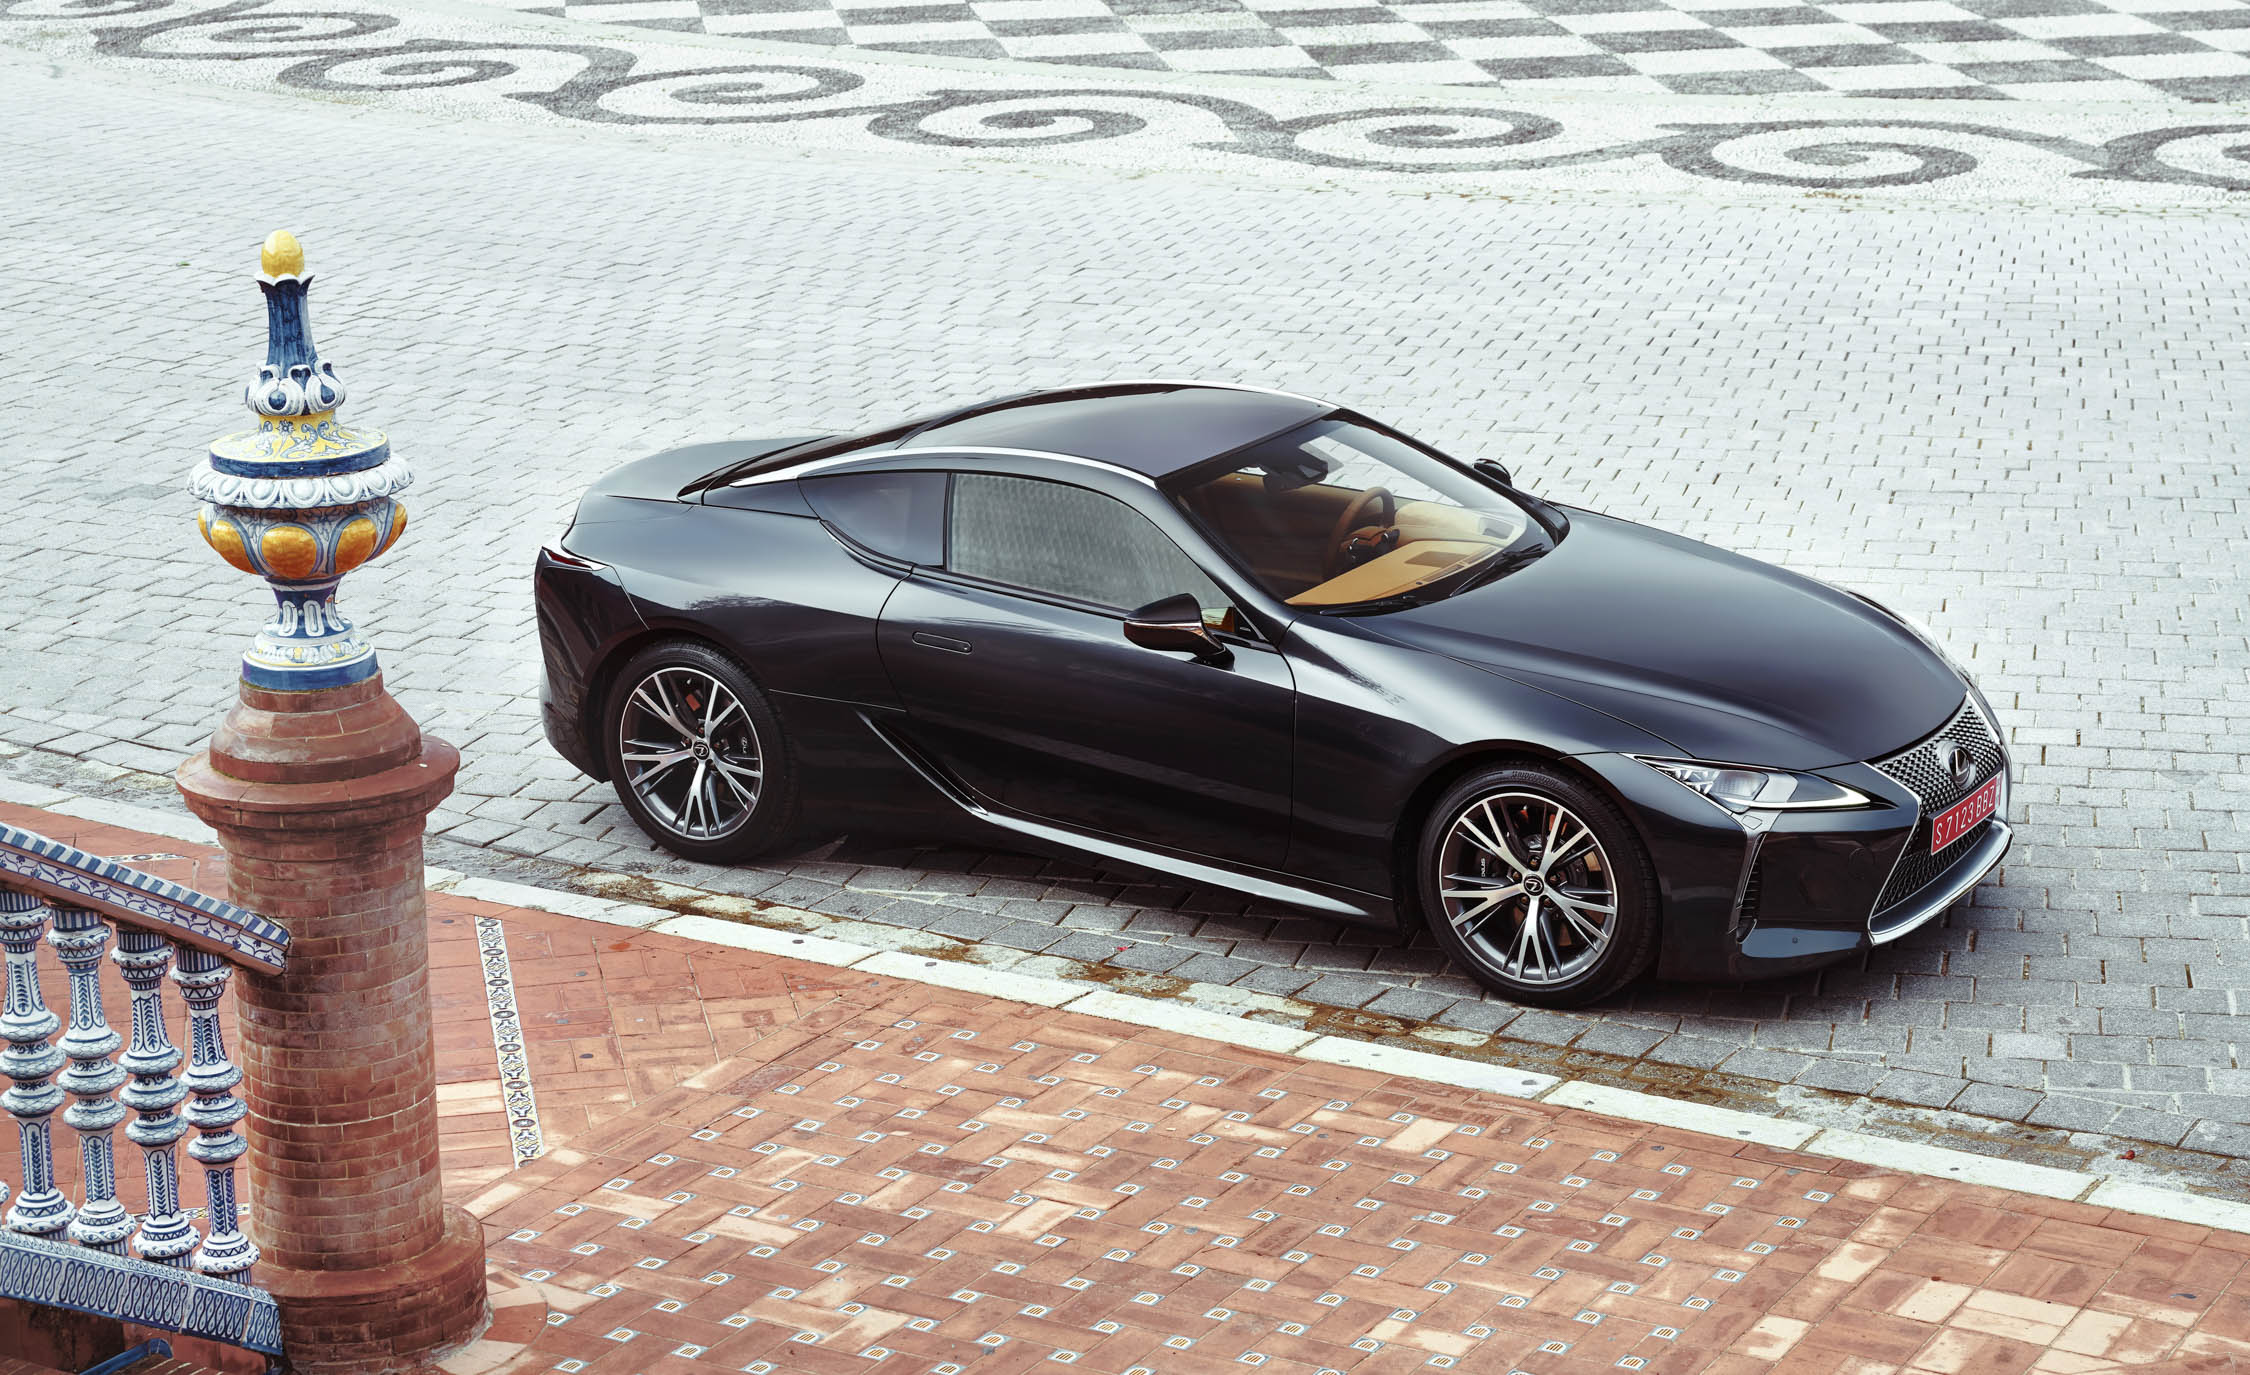 2018 Lexus Lc 500 Black Exterior (Photo 3 of 84)